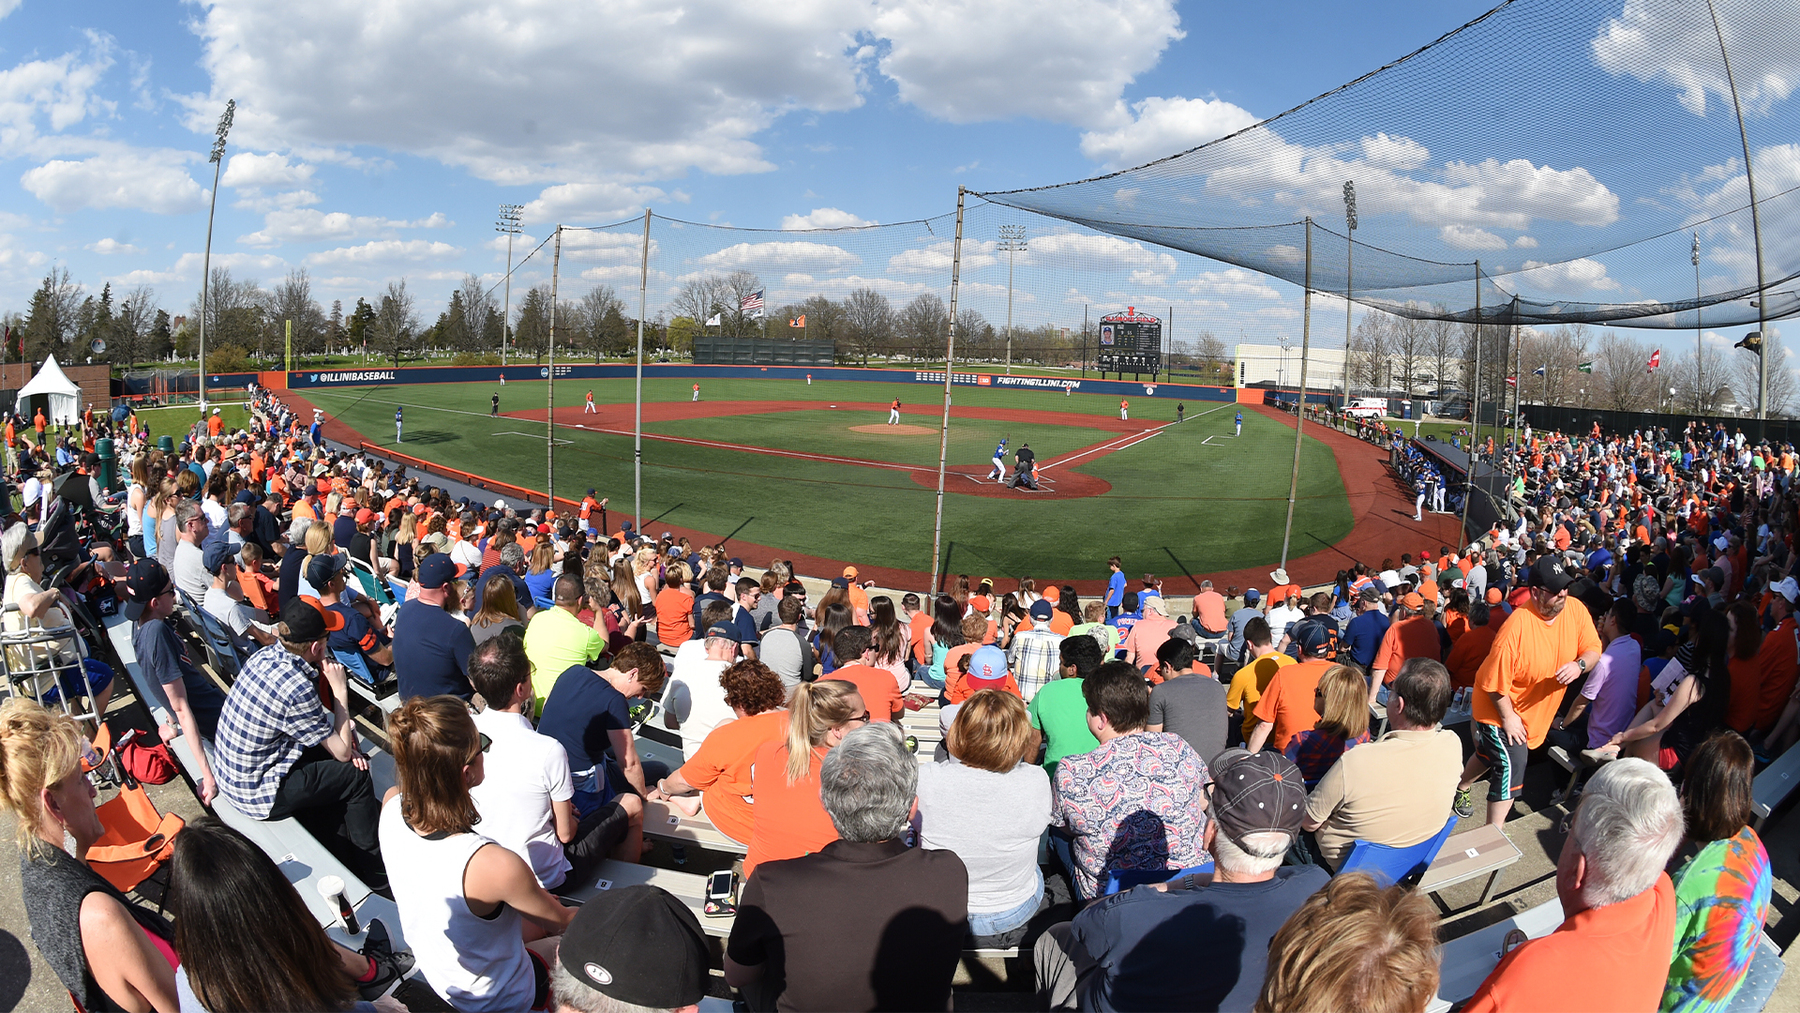 action at Illinois Field on a warm, sunny day pre-COVID-19